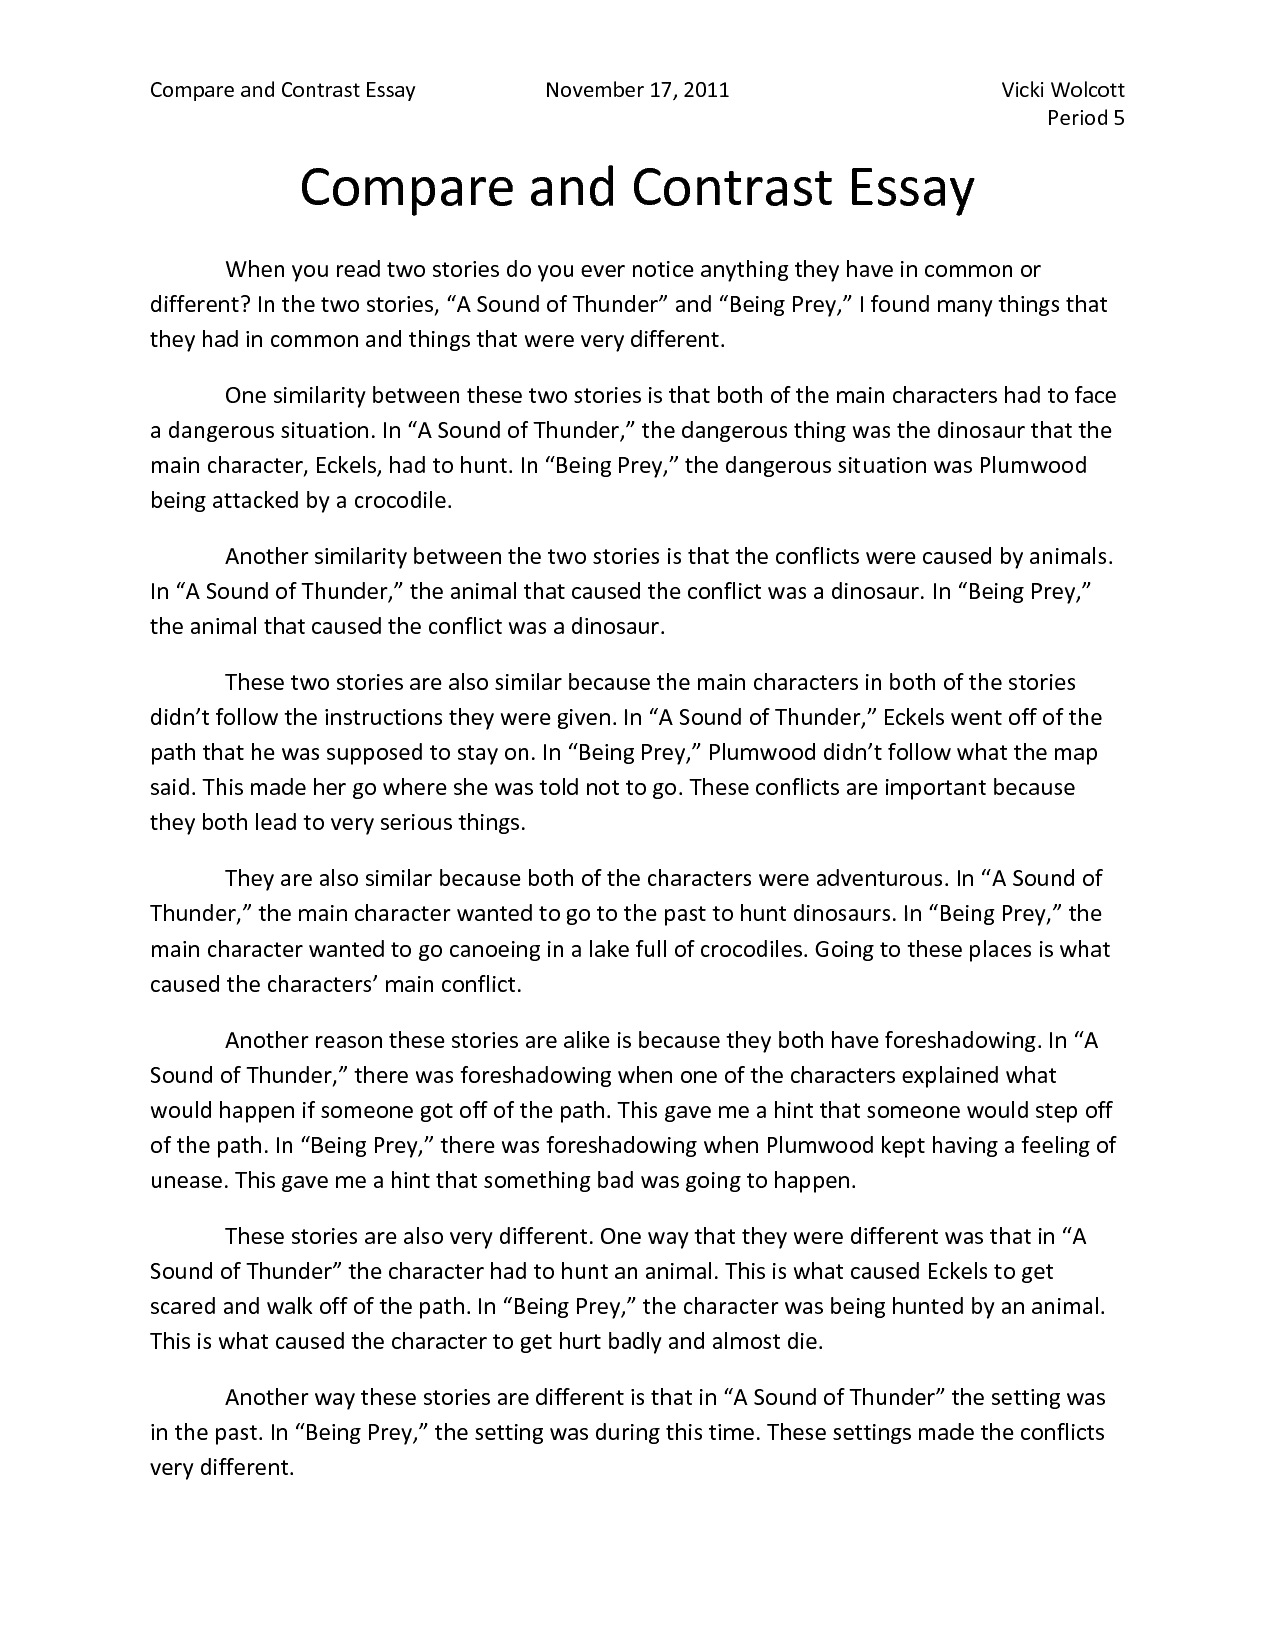 Writing an essay help books pdf free download